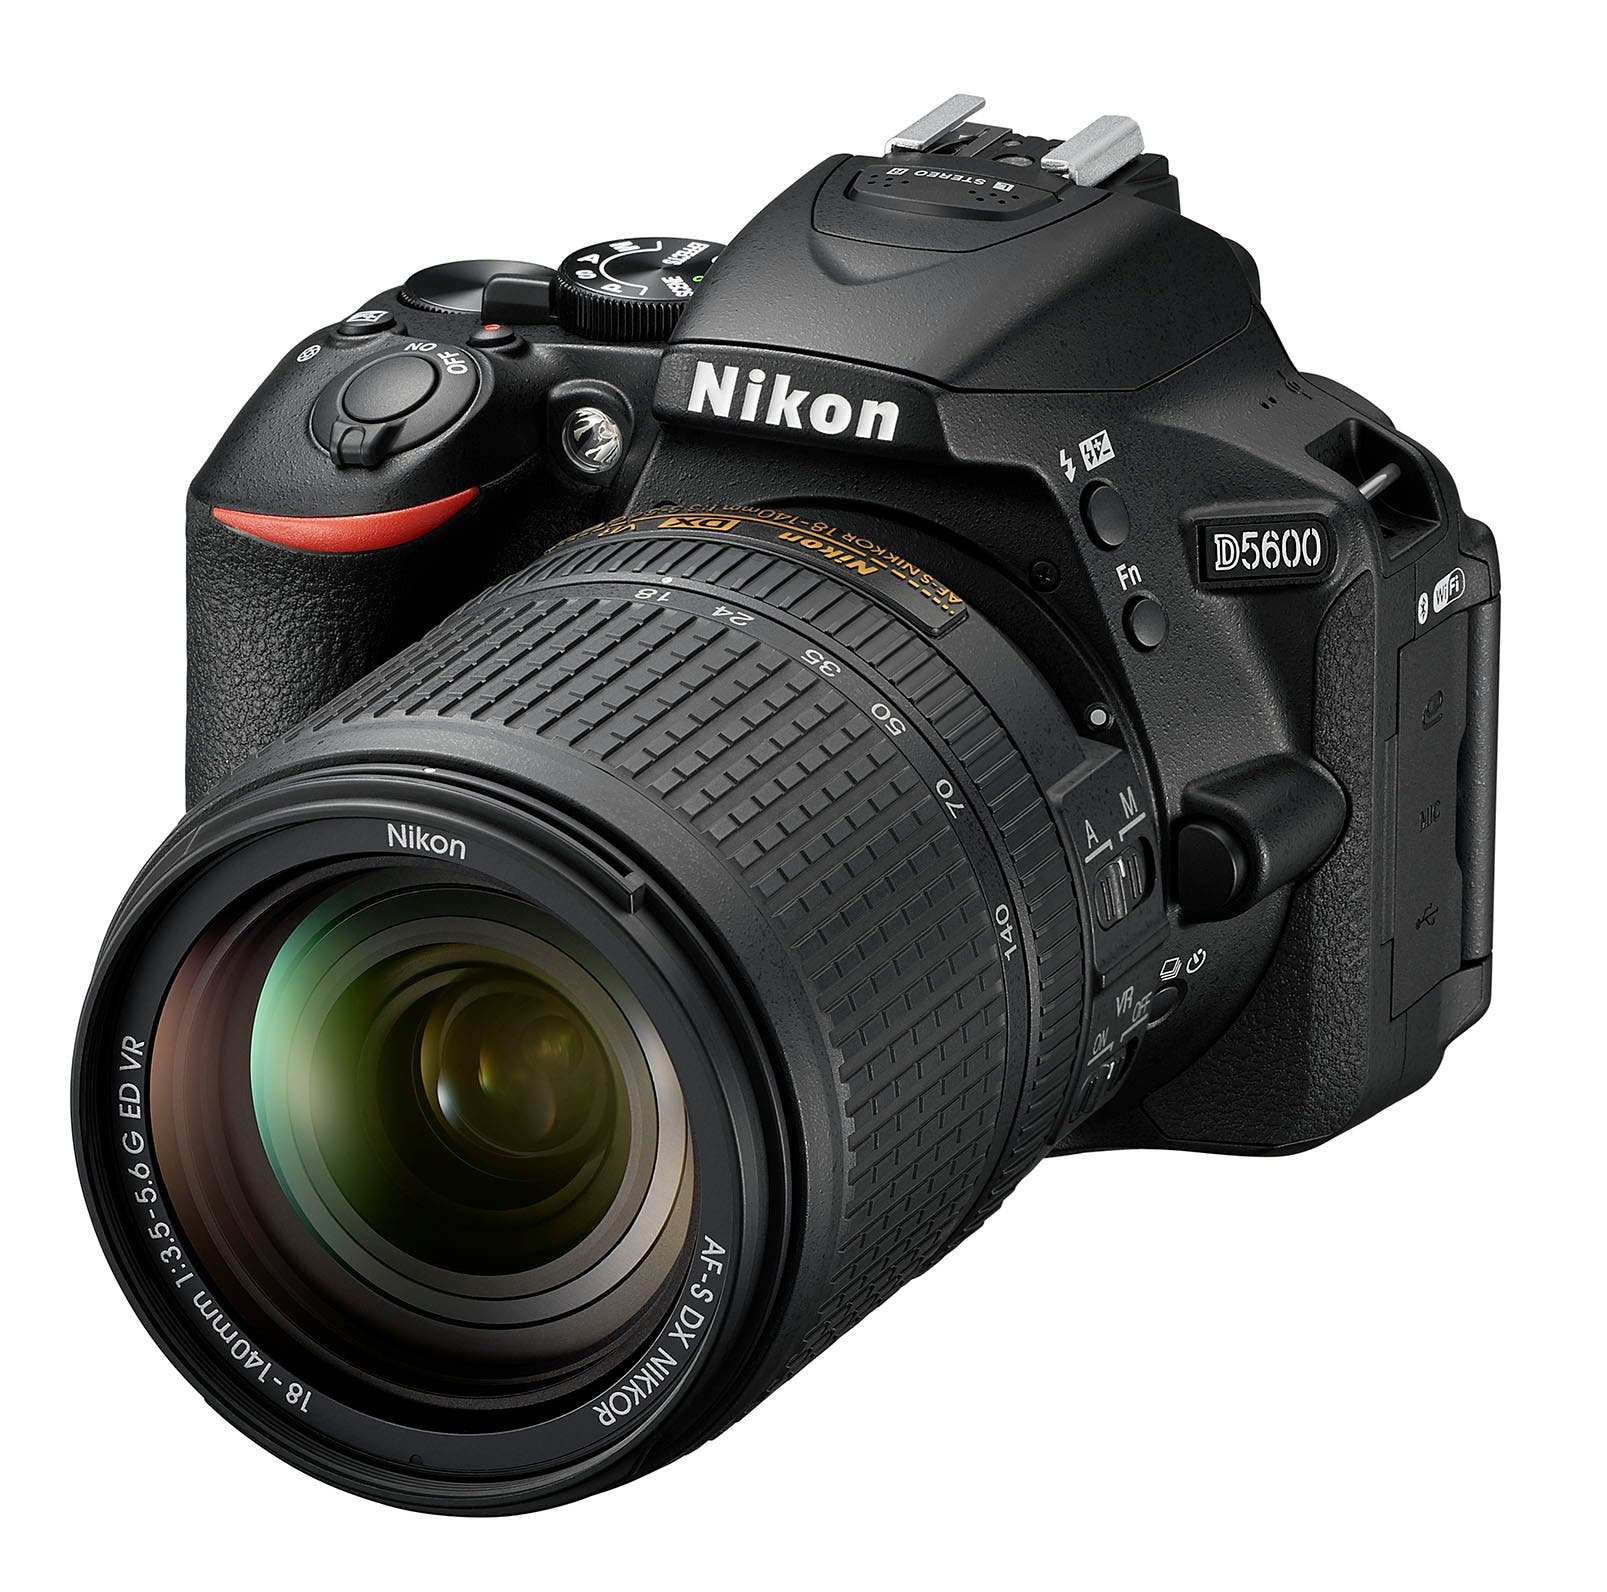 The New Nikon D5600 Won't Be Available in the US (Yet)